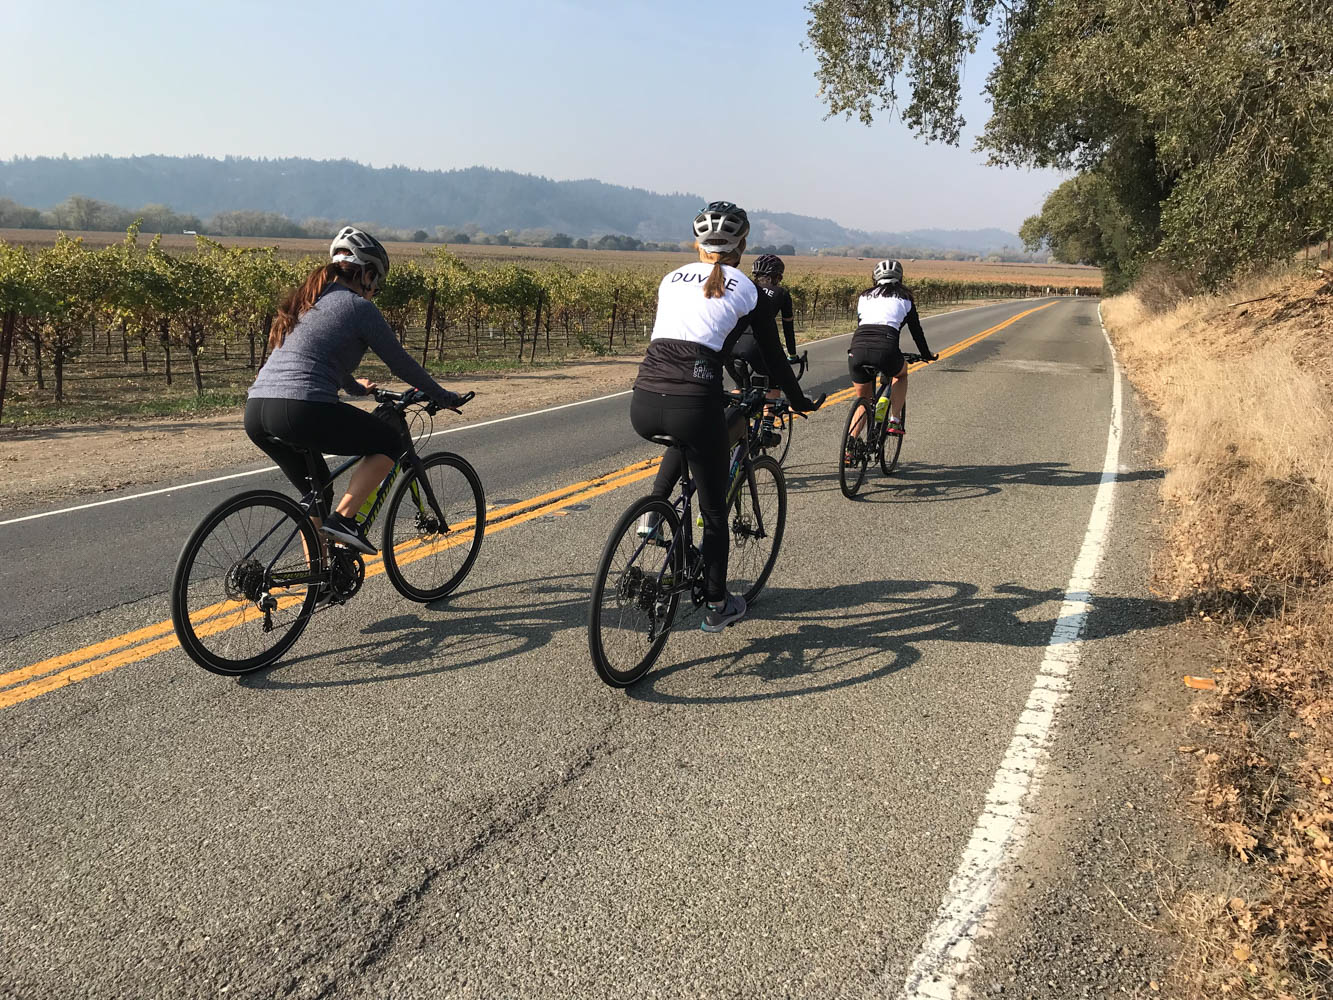 Bike Tours Napa_Duvine_Napa_Travel_Ideas_LR-4.jpg